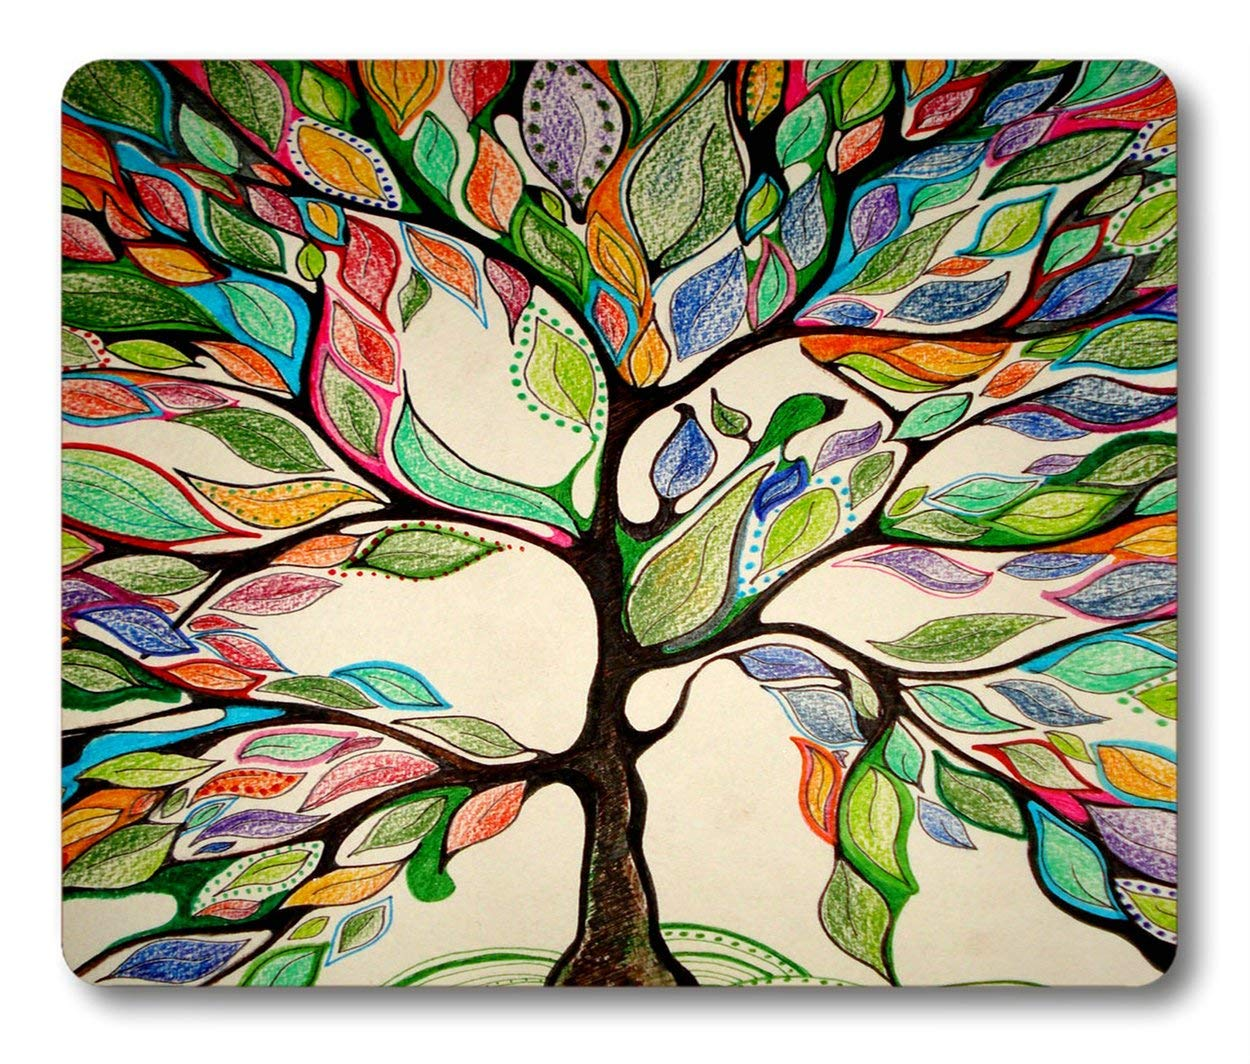 5073524941f Get Quotations · Smooffly Tree Gaming Mouse Pad,Tree Of Life Non-Slip  Rubber Mouse pad Gaming